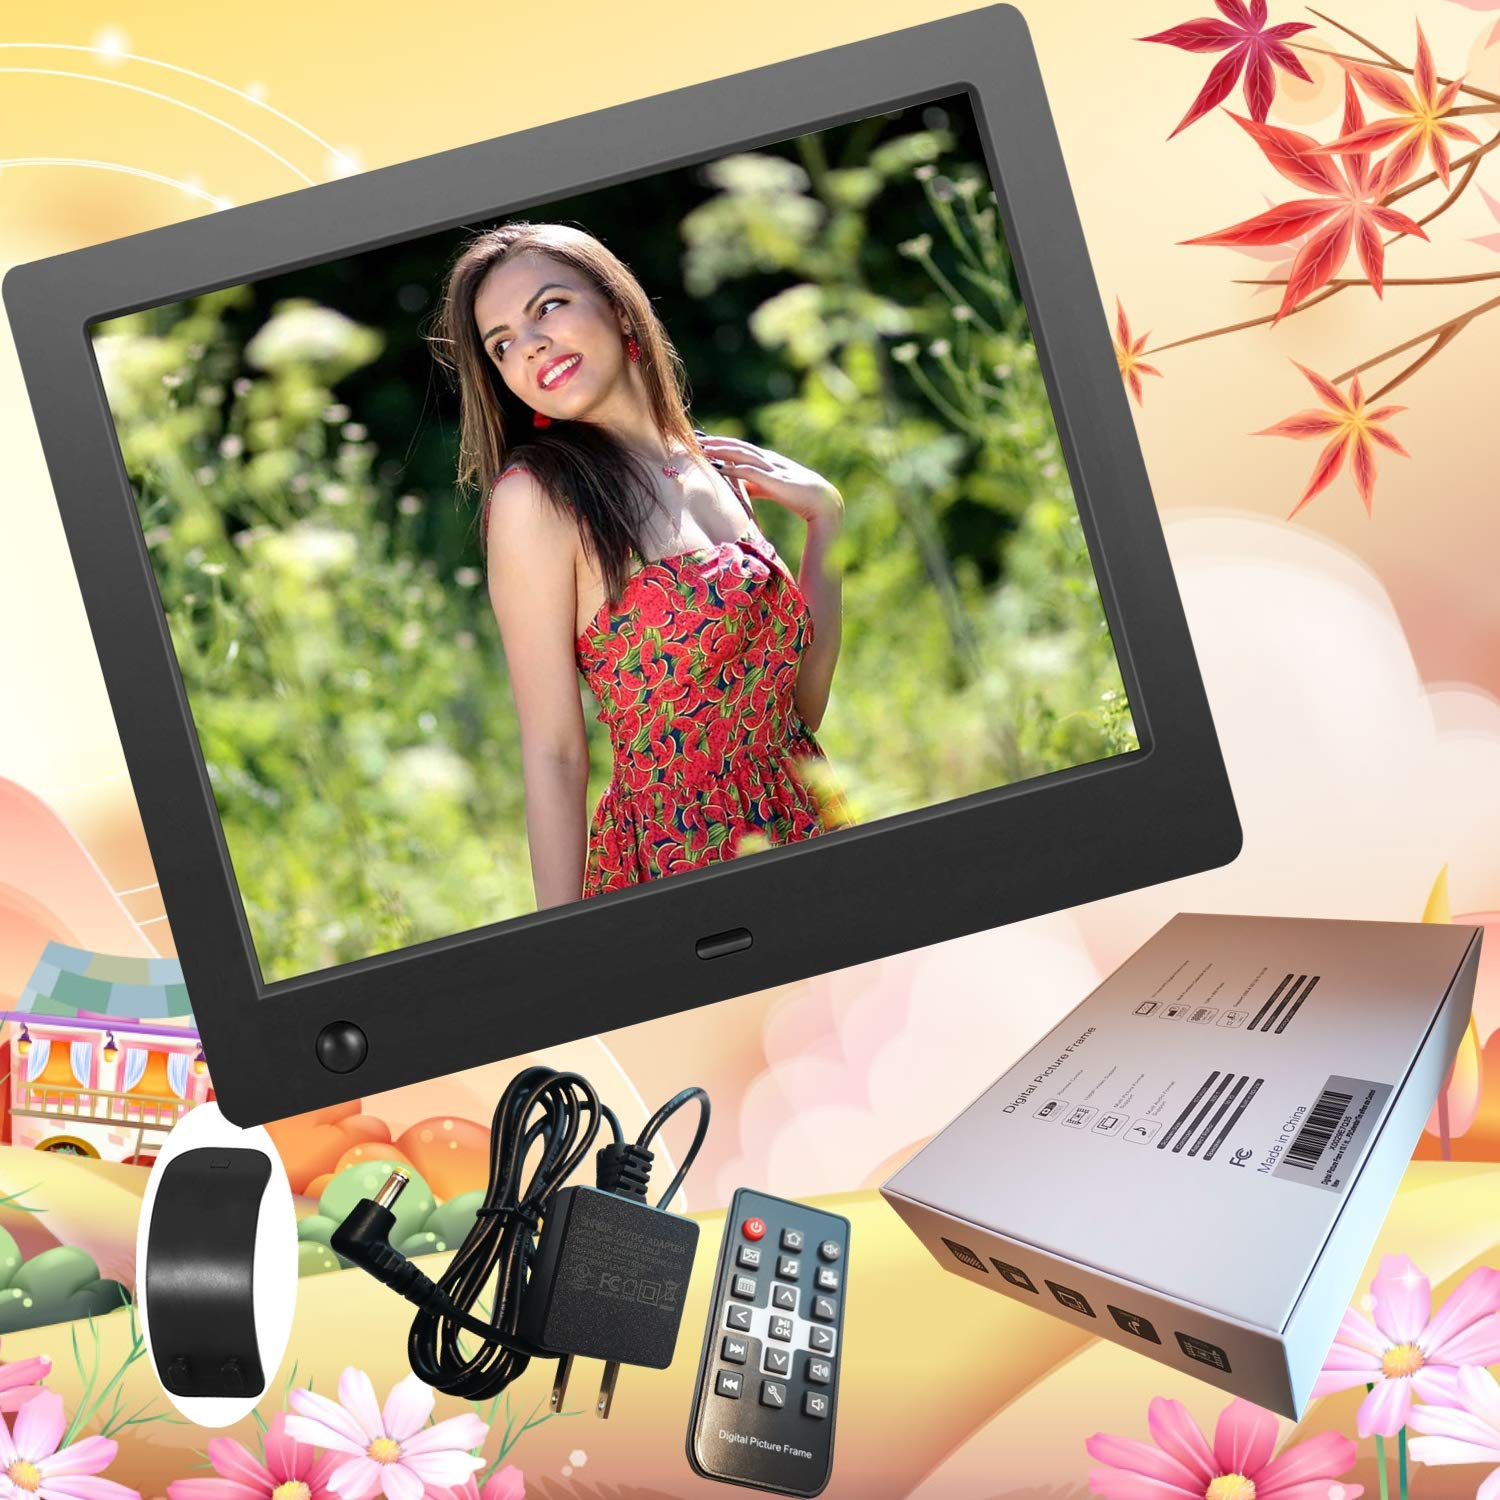 Digital Picture Frame 8 inch, Digital Photo Frame Video Player with Motion Sensor Smart Electronics Picture Frame High Resolution 1024x768 IPS LCD/1080P 720P /Stereo/MP3/Calendar/Time/Remote Control by Quality Life (Image #2)